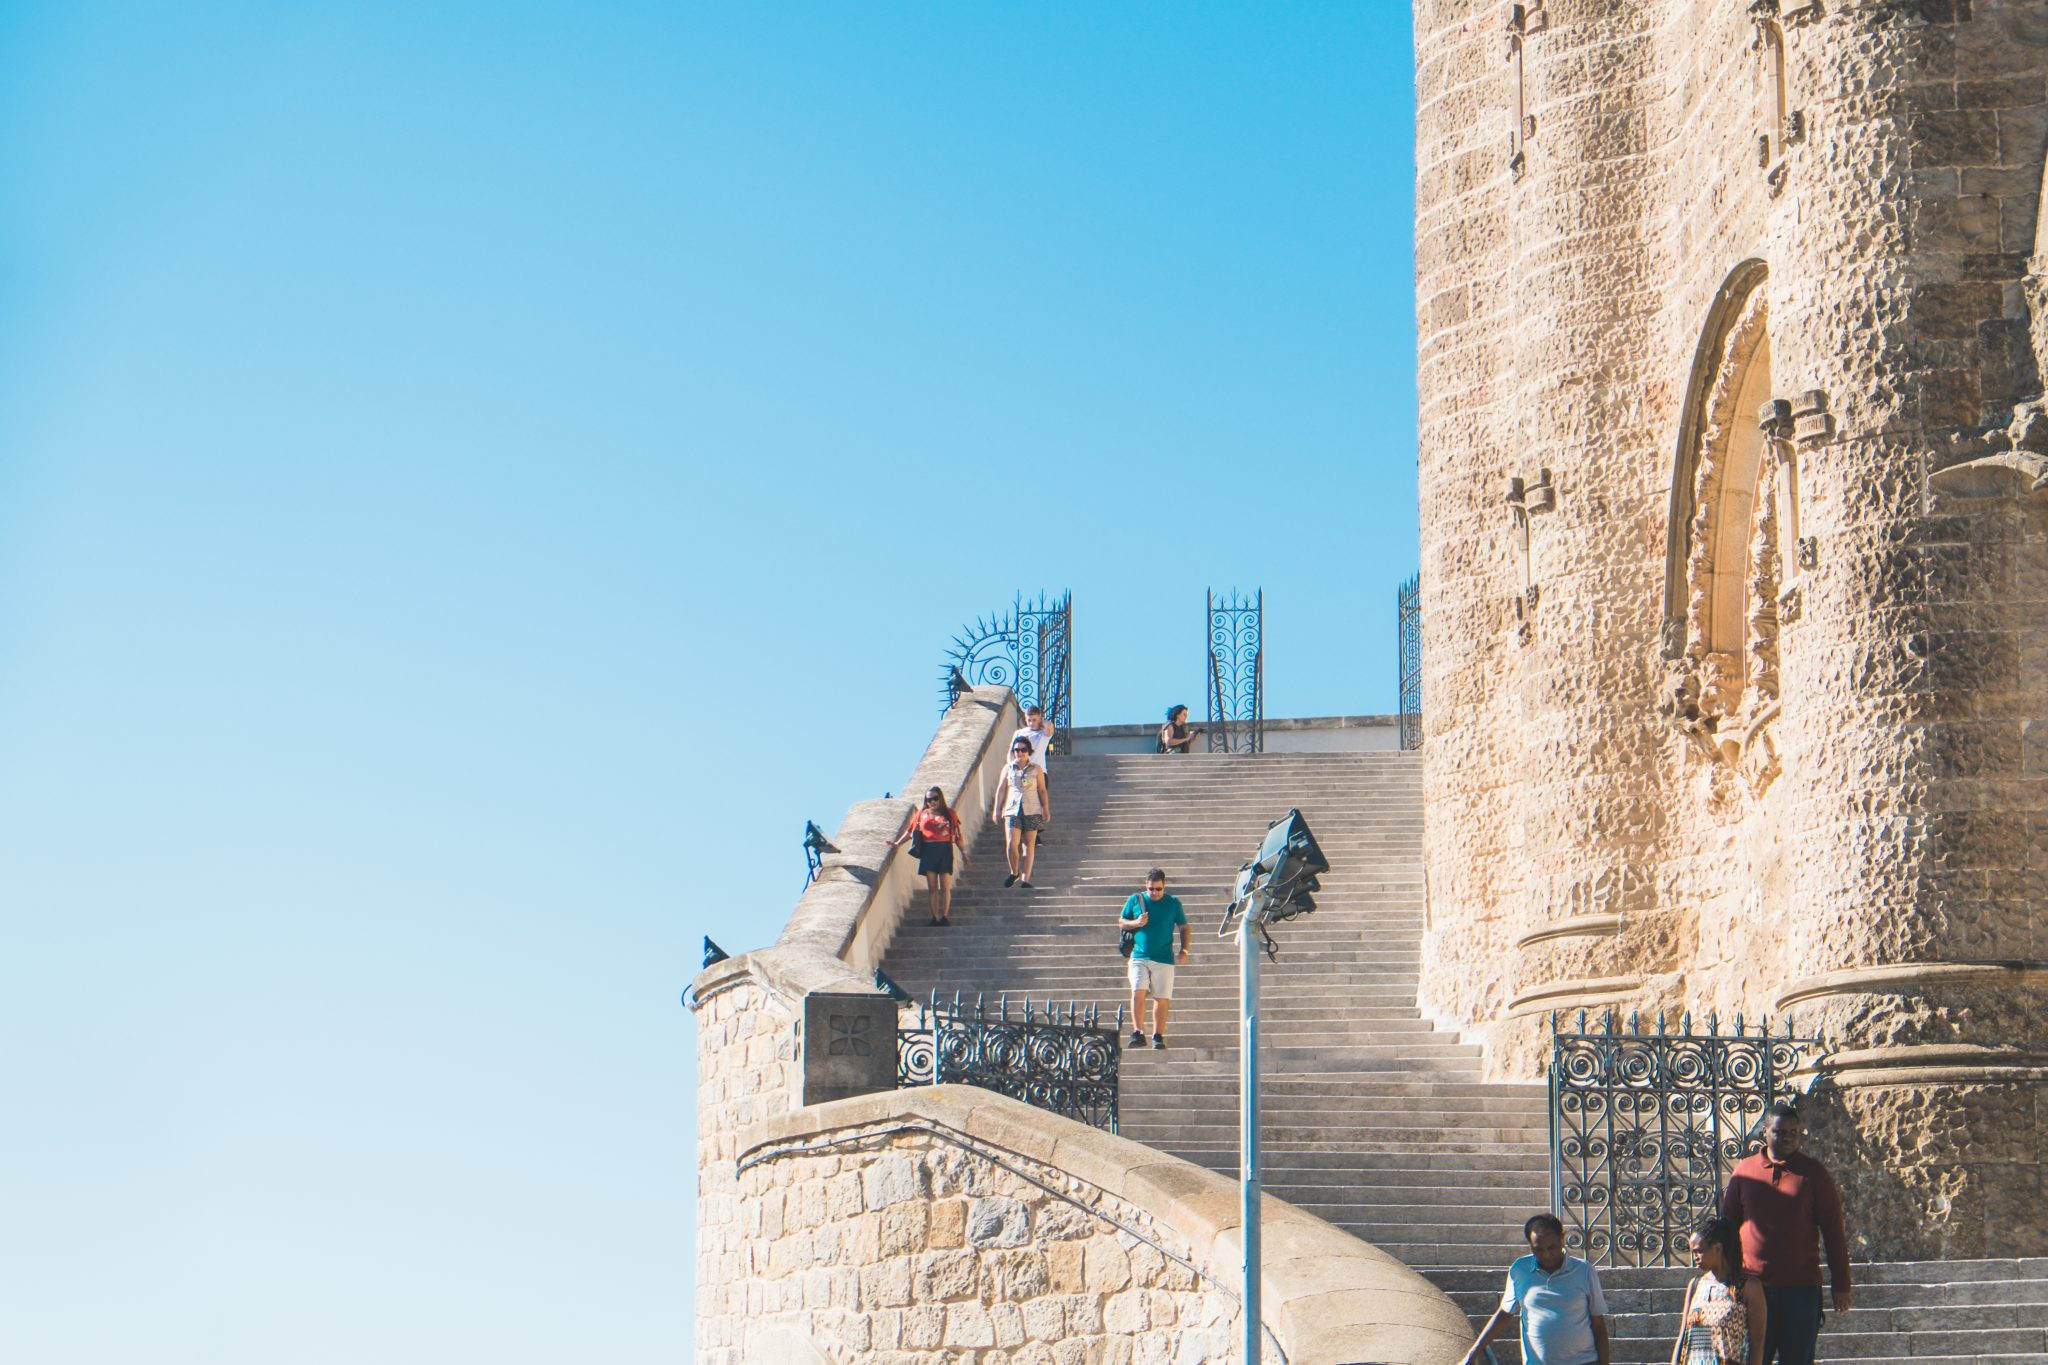 People on the stairs with blue sky photo by Jo Kassis